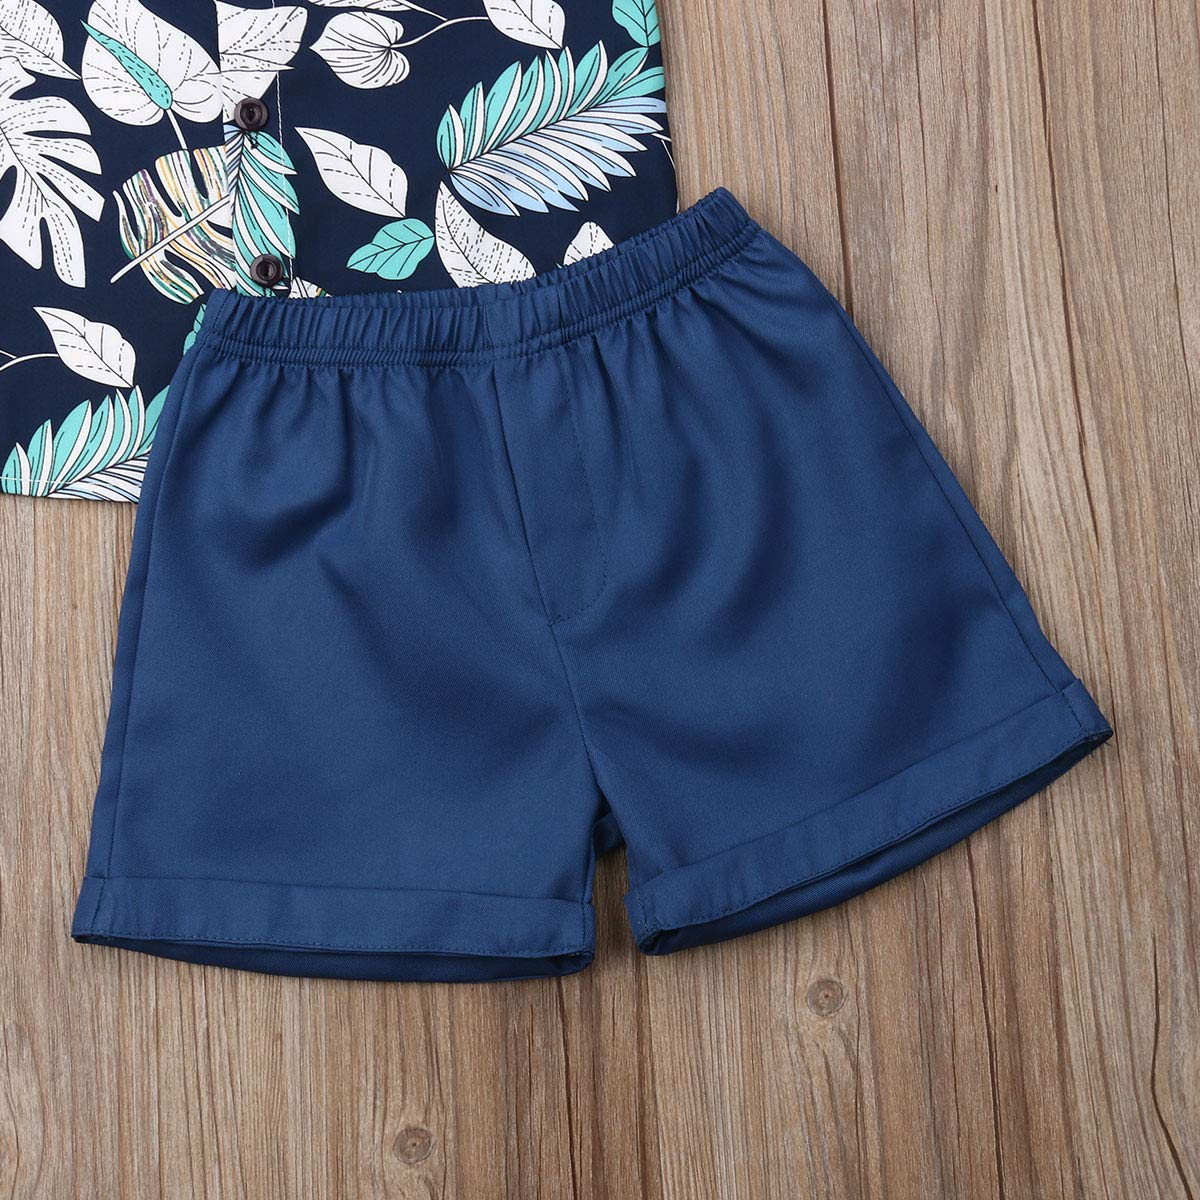 Toddler Little Boy Kids Summer Floral Shirt Bermuda Shorts Outfit Set Clothes